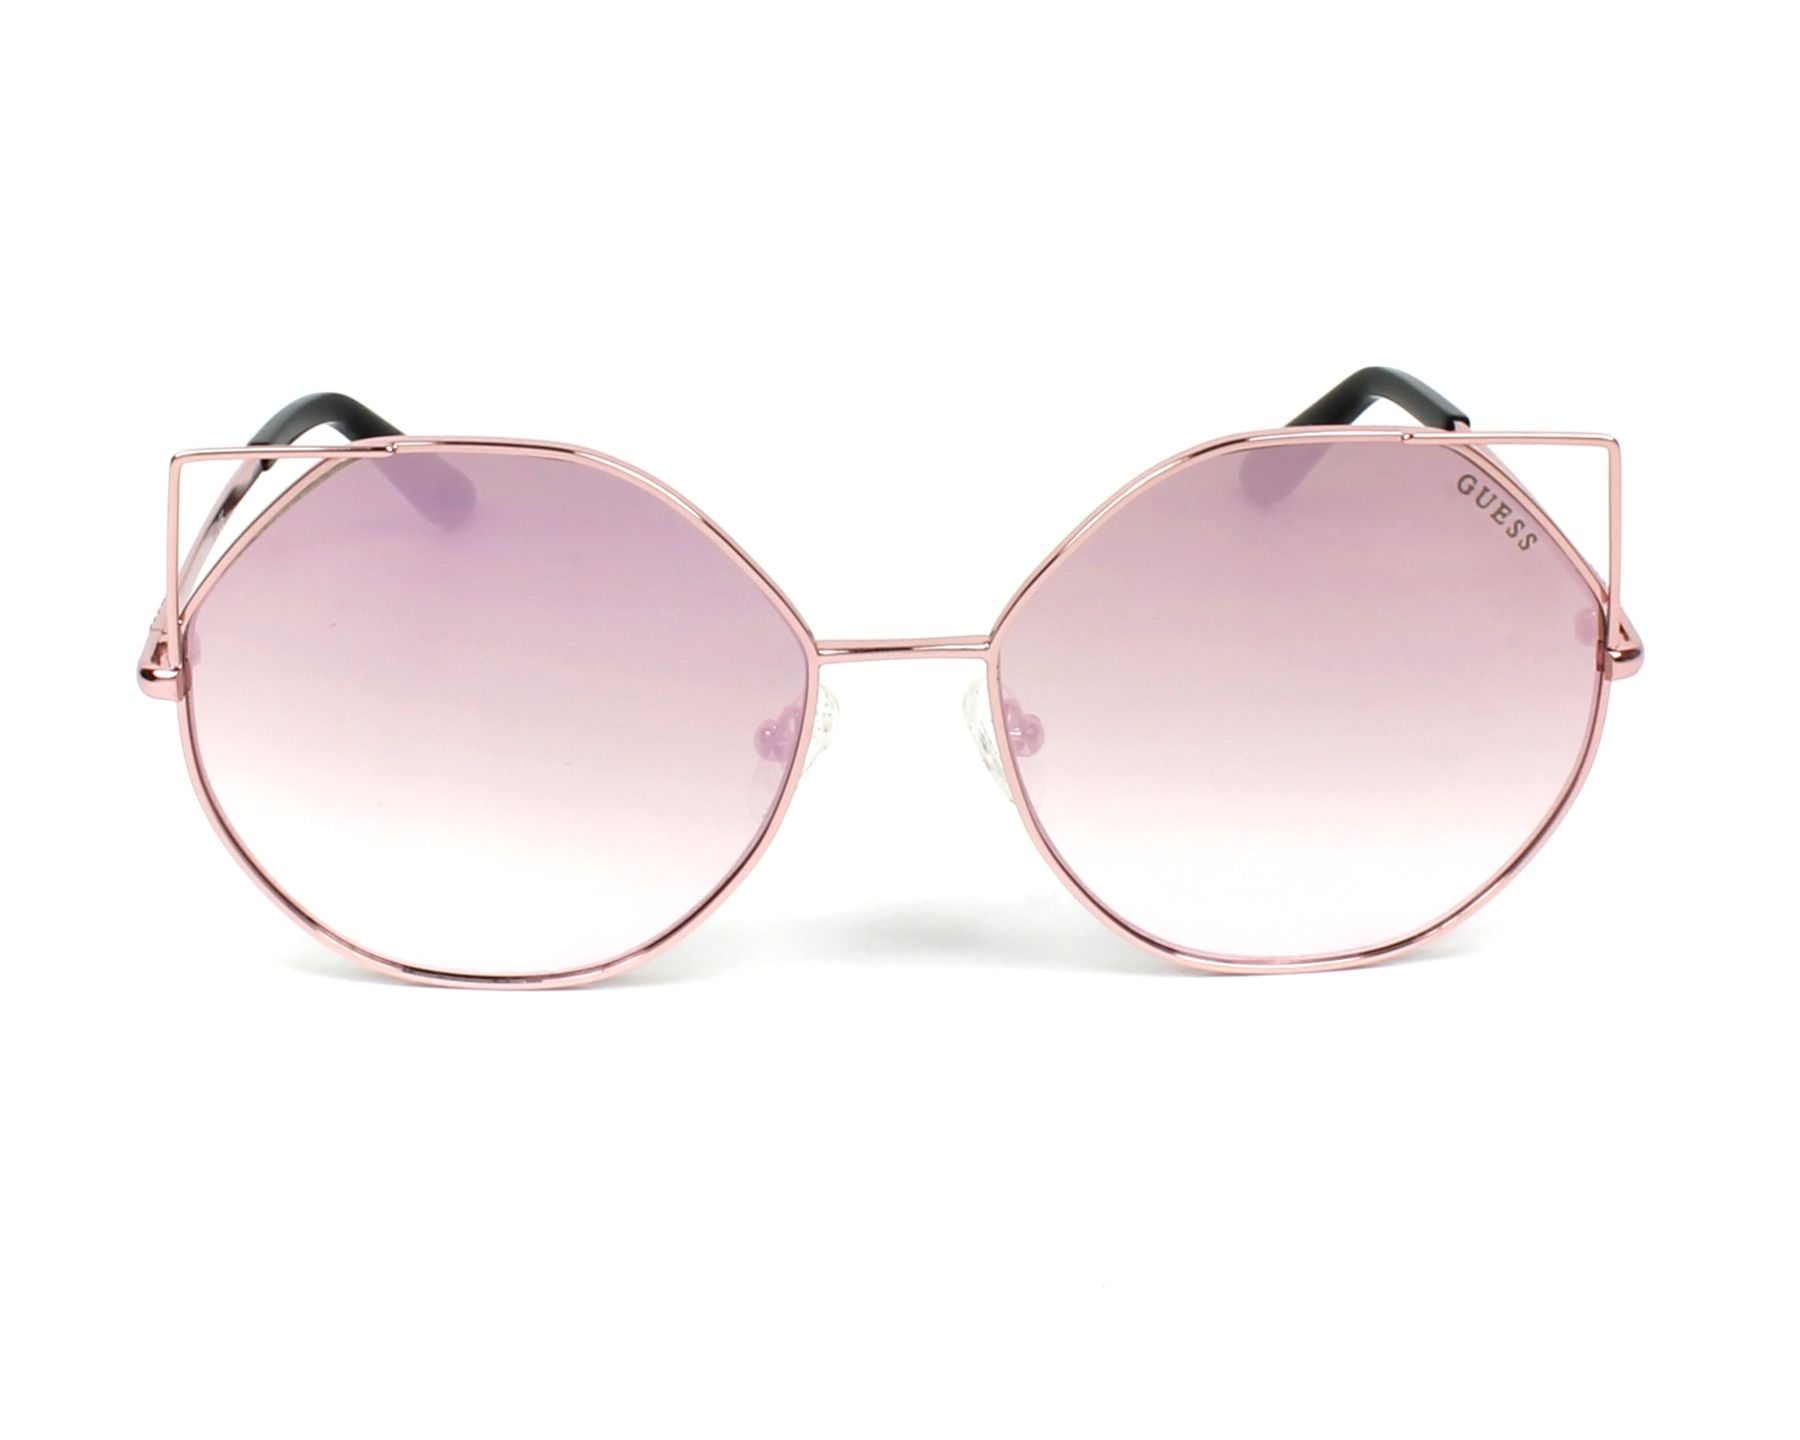 Sunglasses Guess GU-7527 28Z 58-16 Rose gold front view